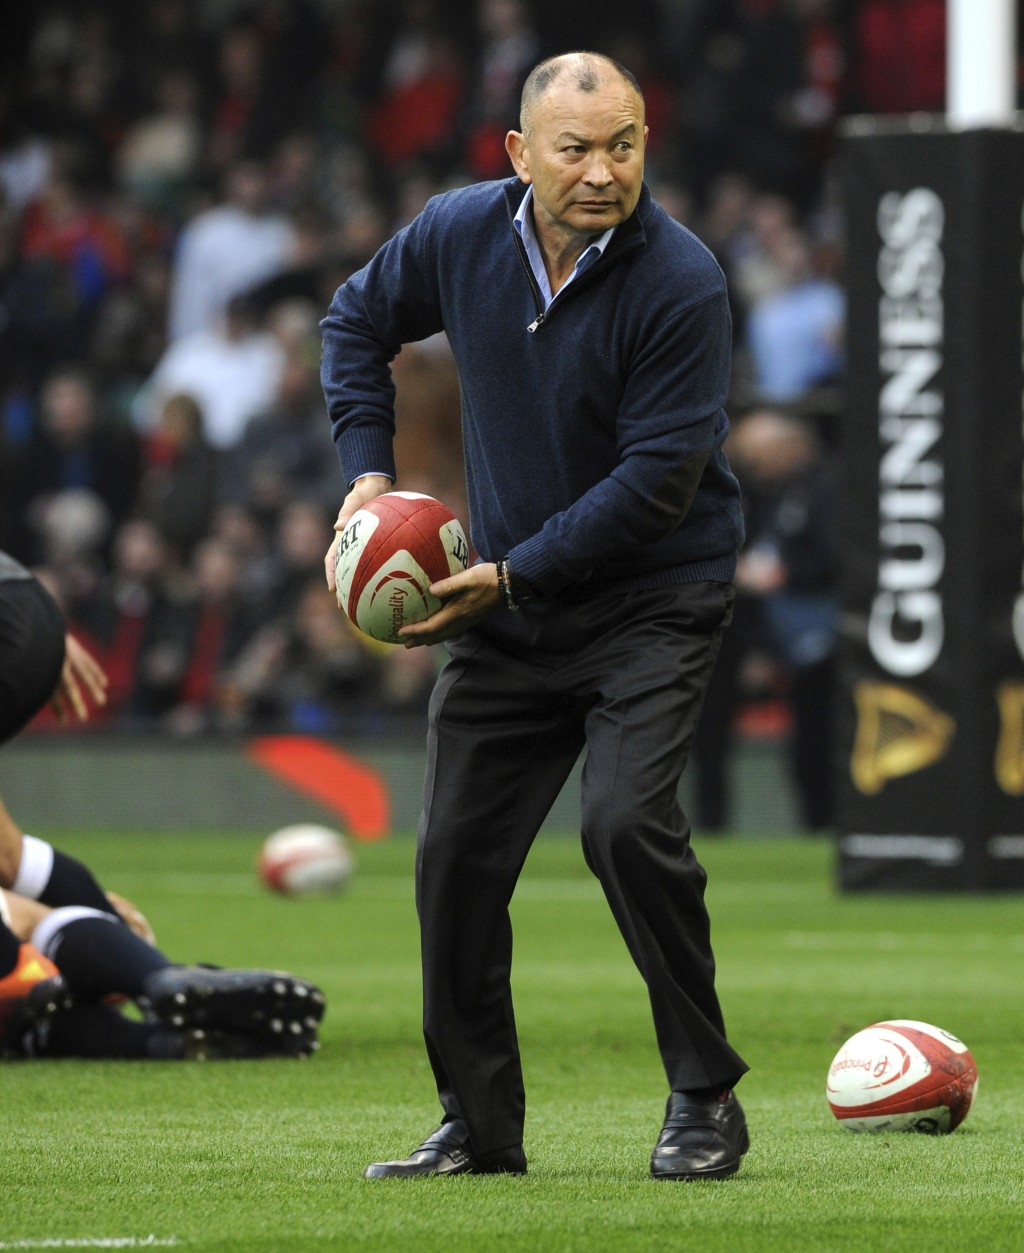 FILE - In this Feb. 23, 2019, file photo, England rugby head coach Eddie Jones prepares to pass the ball as his team prepares for the Six Nations rugb